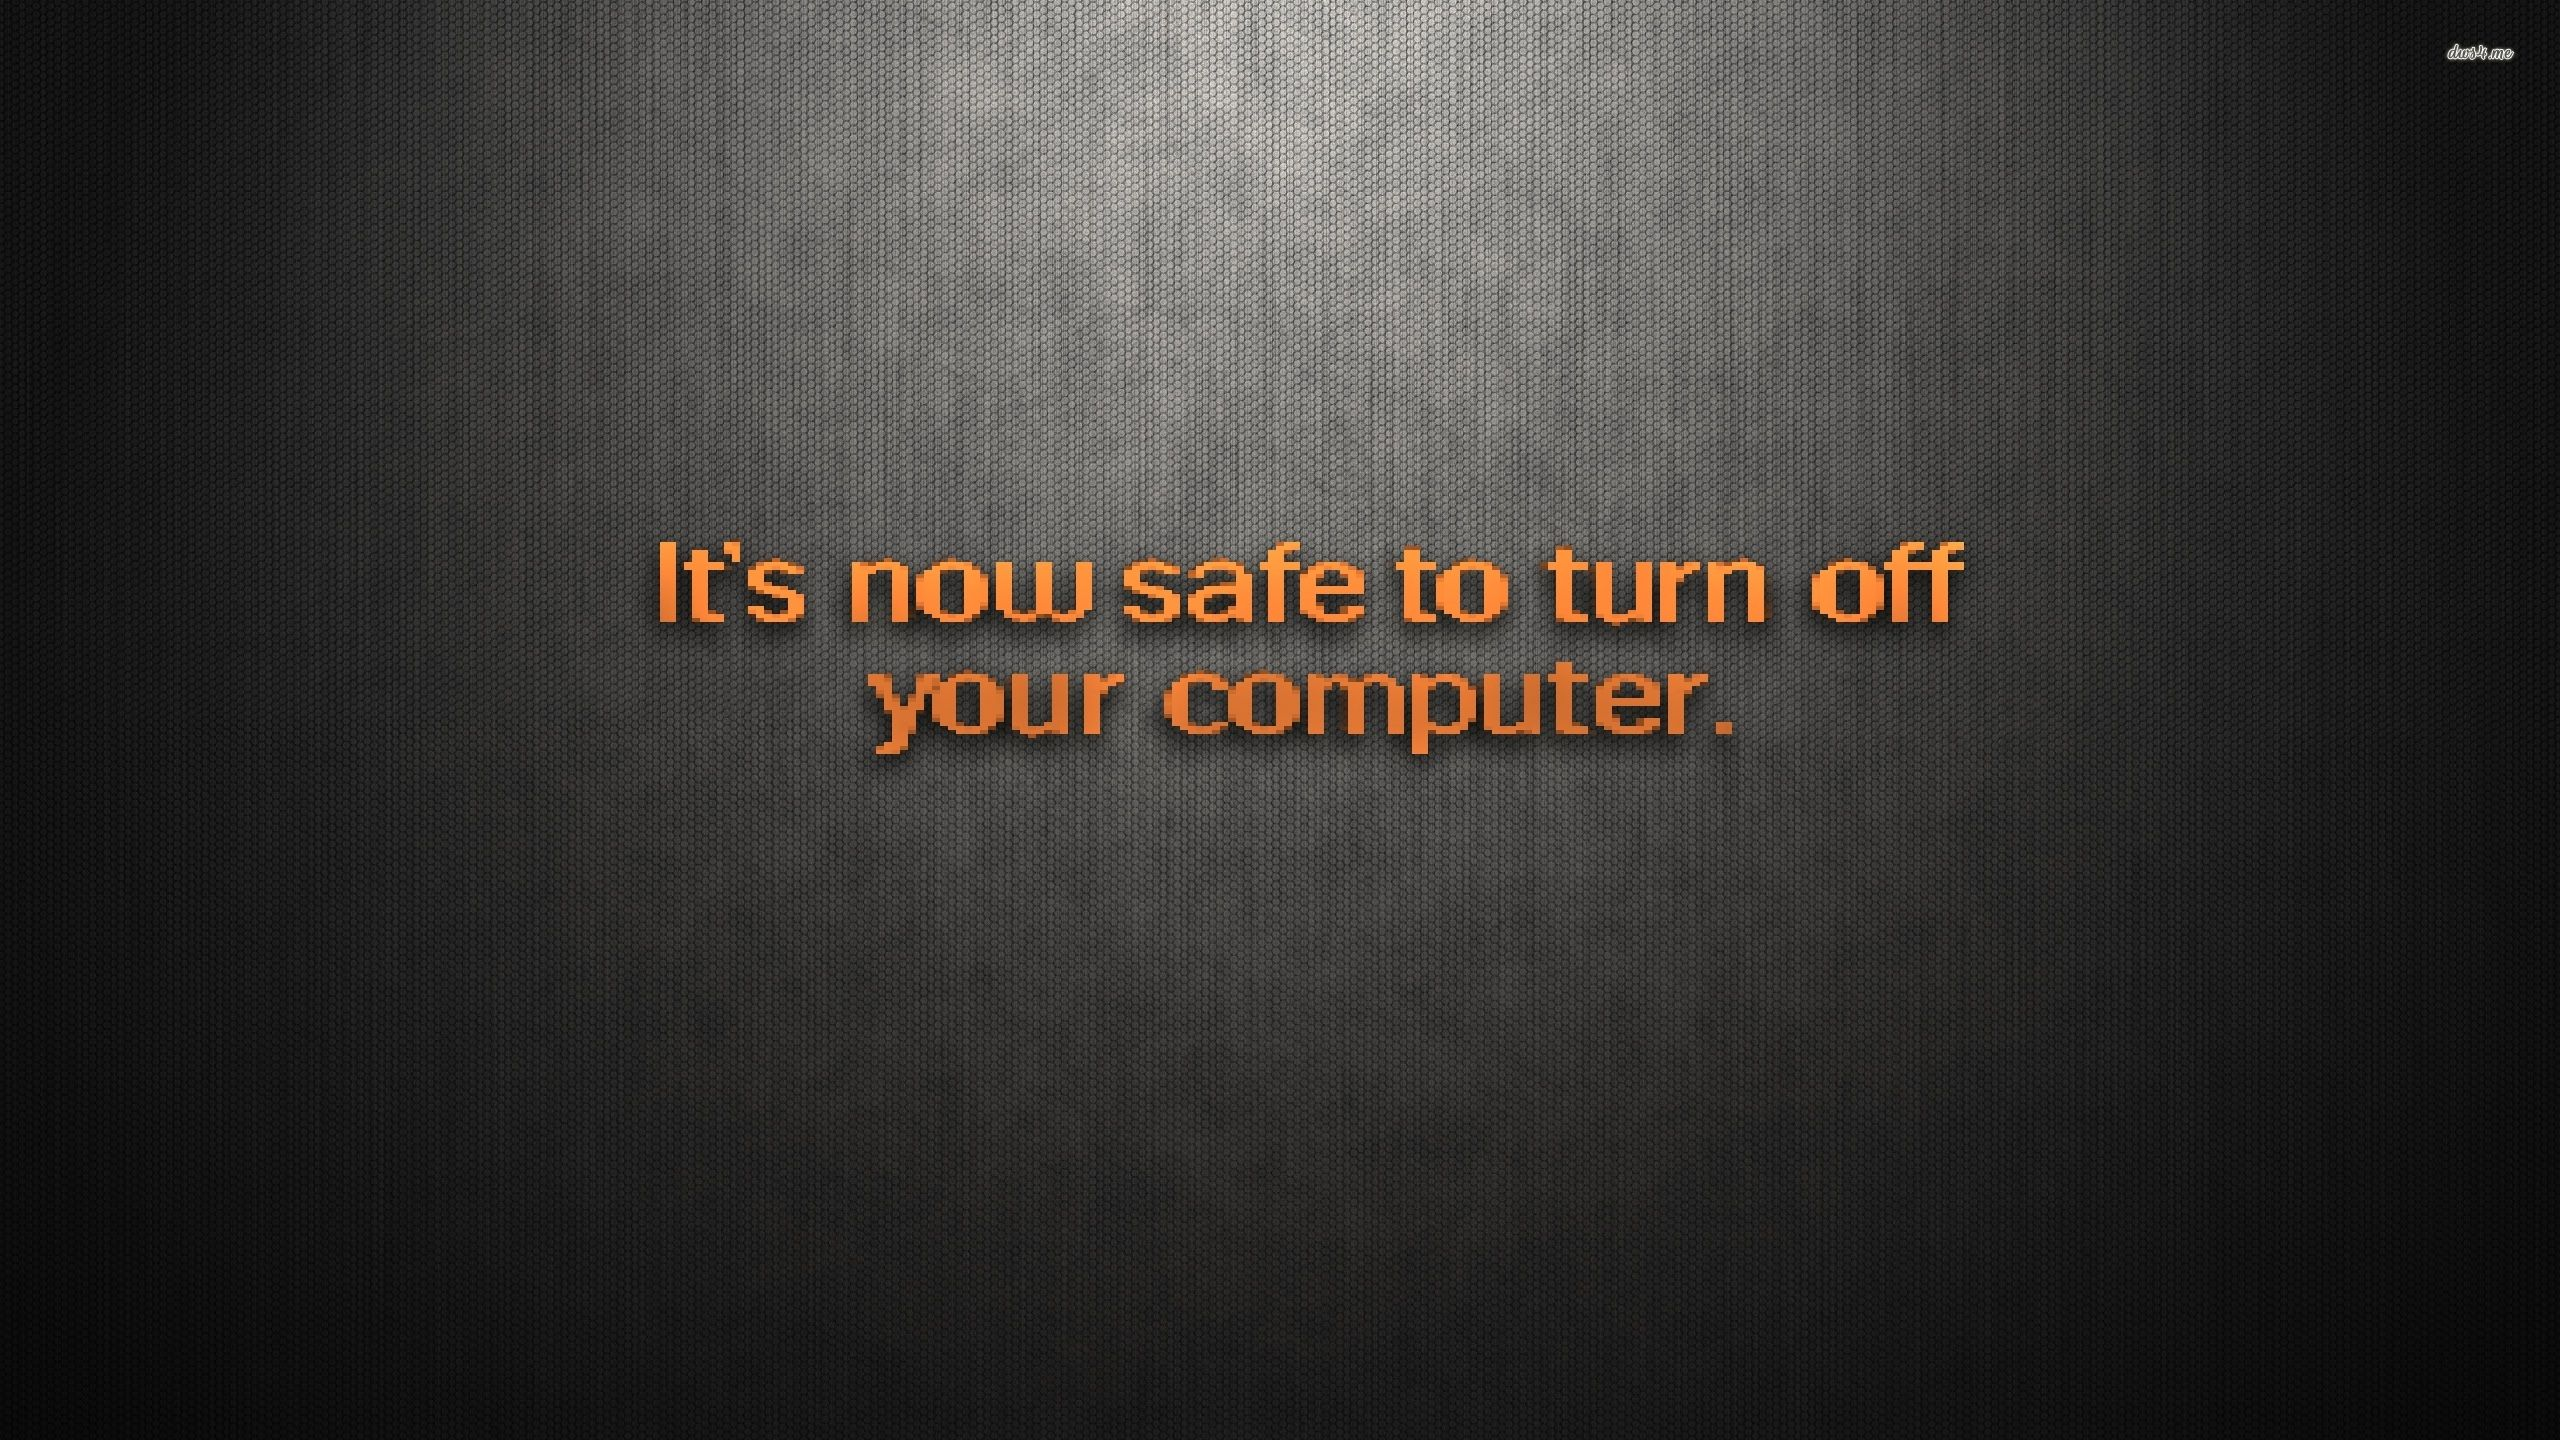 2560x1440 veryfunnywallpaper: safe to turn off your computer wallpaper ...